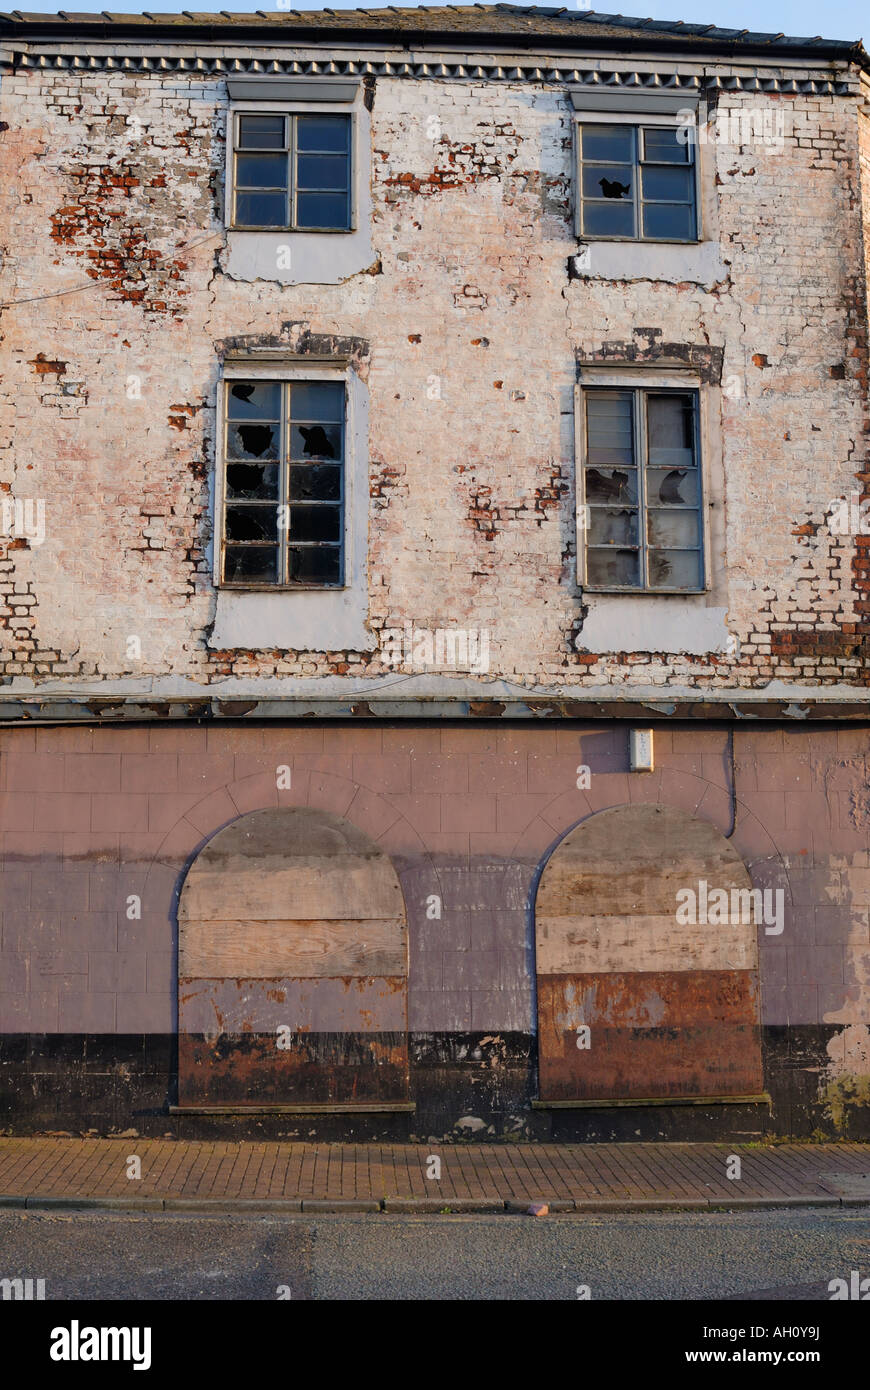 Semi derelict building suffering from urban decay in Widnes Cheshire England - Stock Image